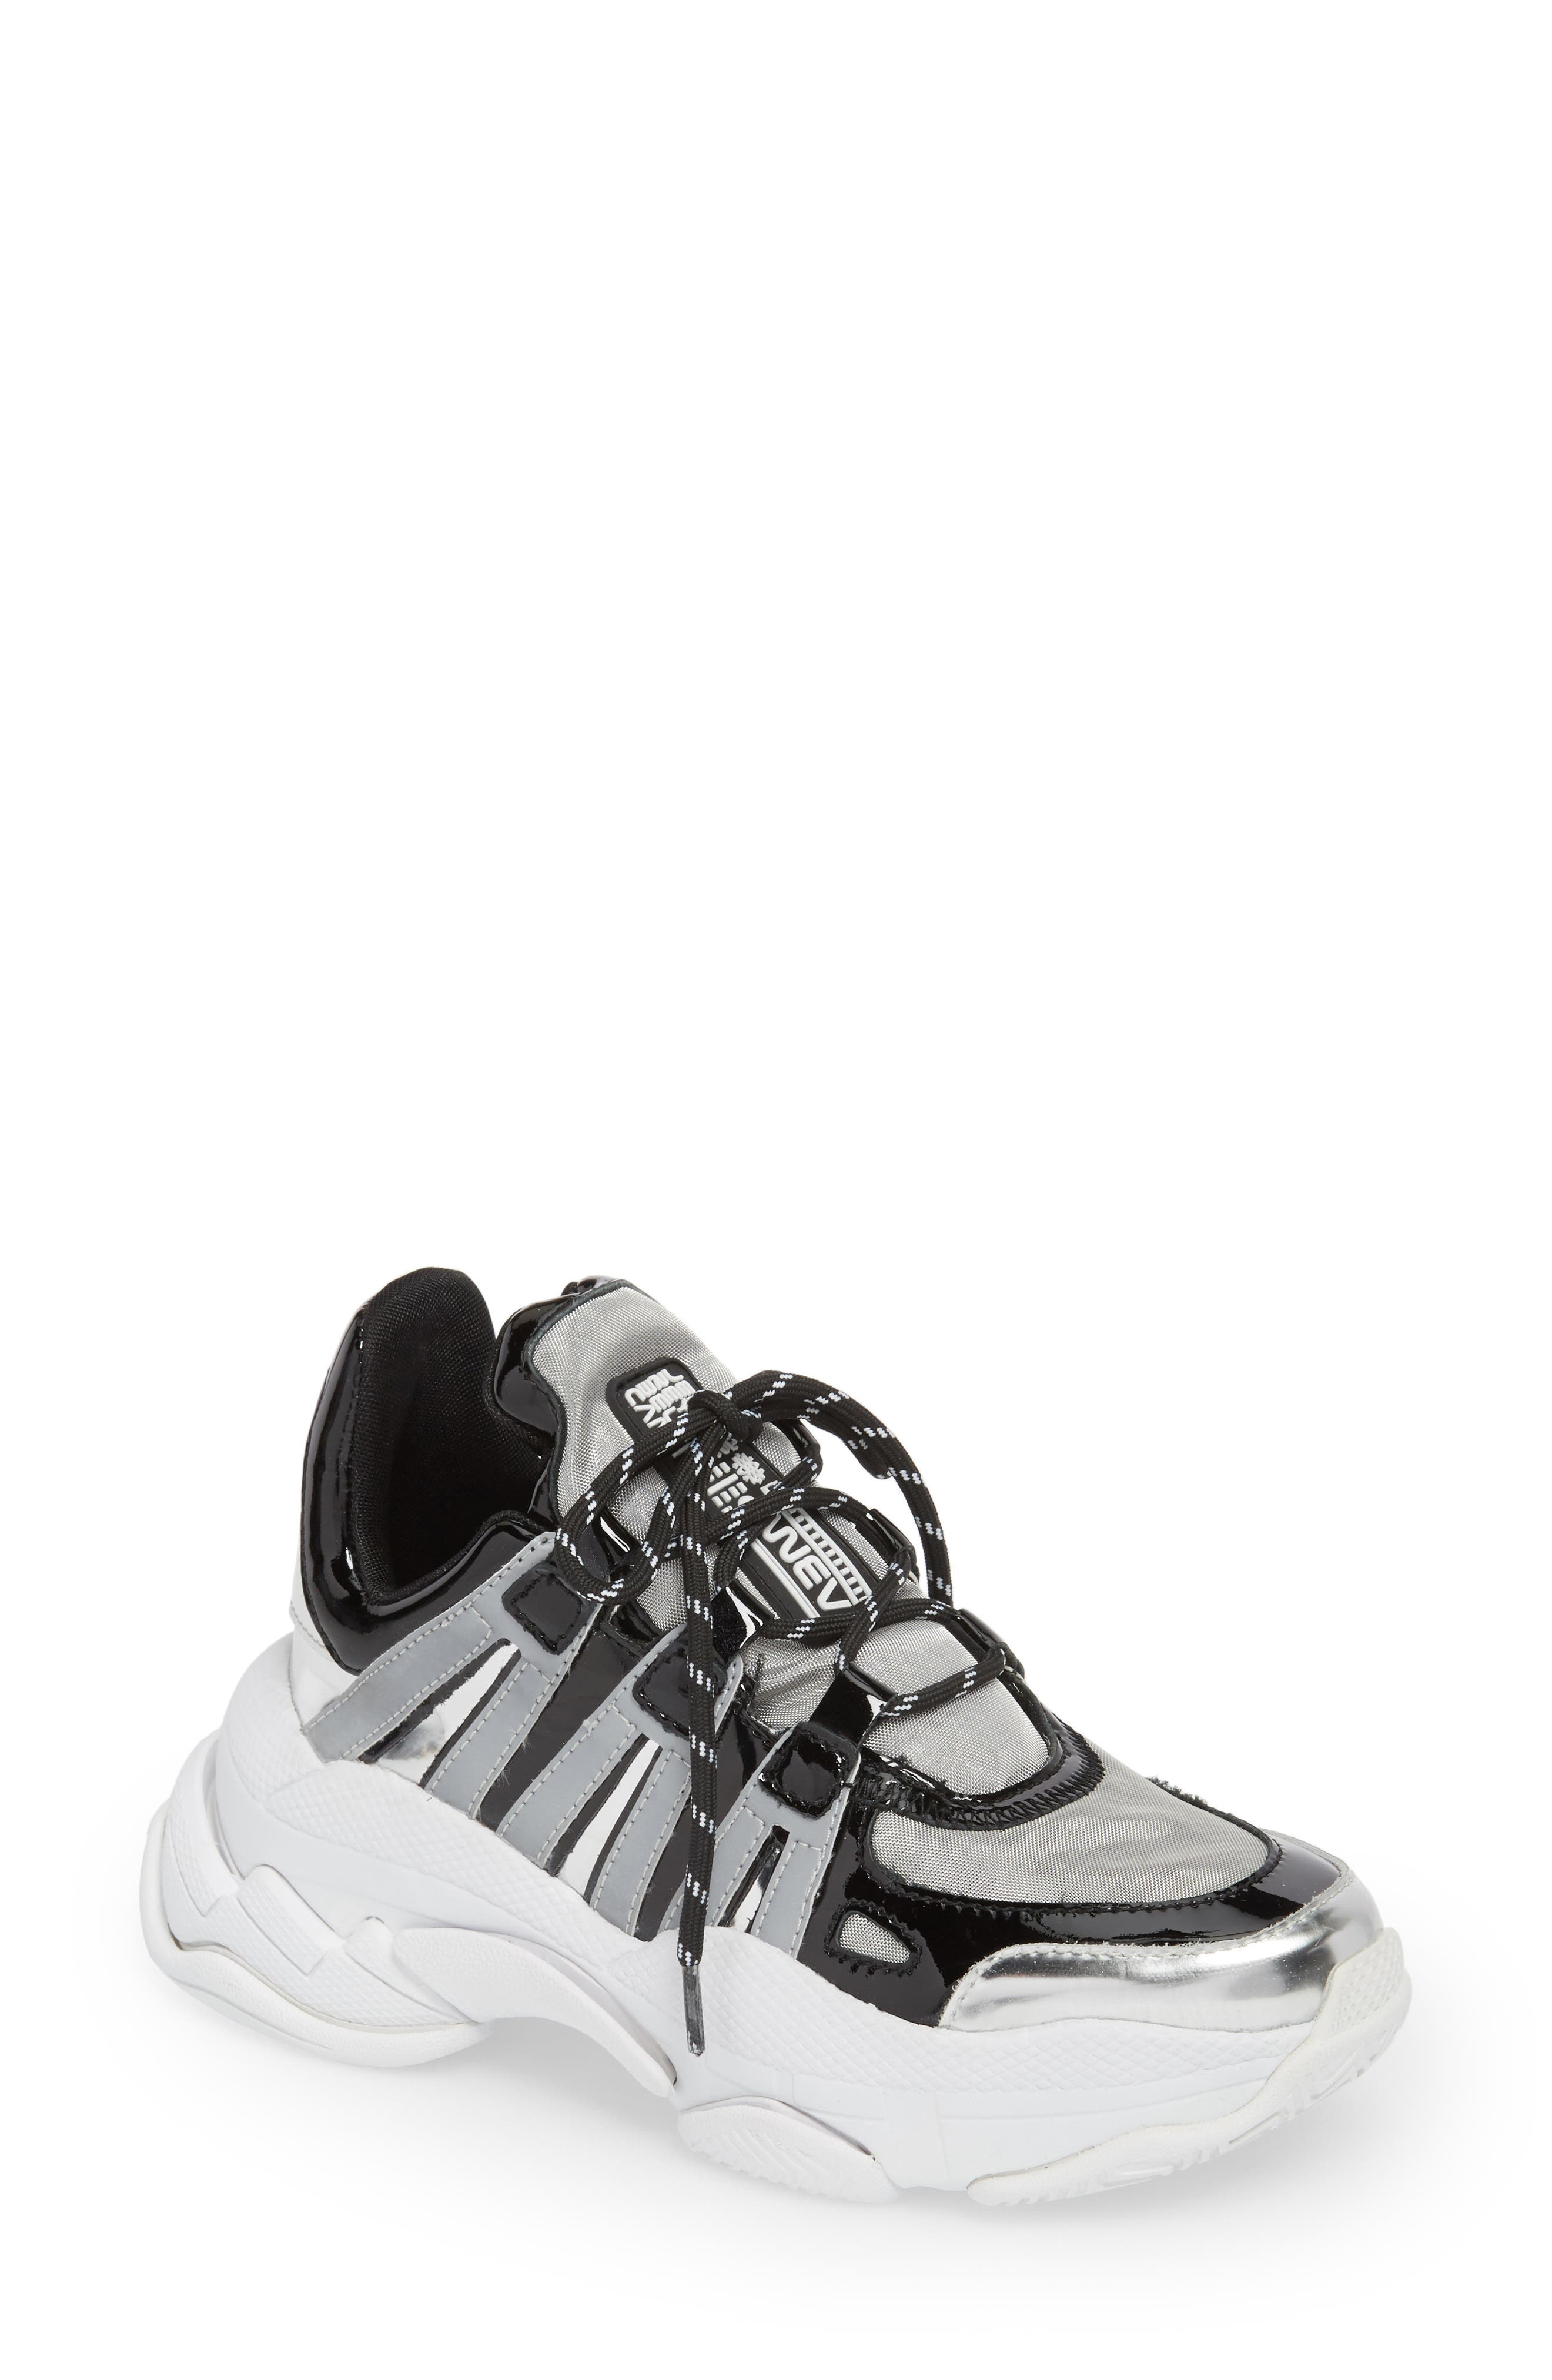 WiFi Sneaker,                             Main thumbnail 1, color,                             SILVER MULTI